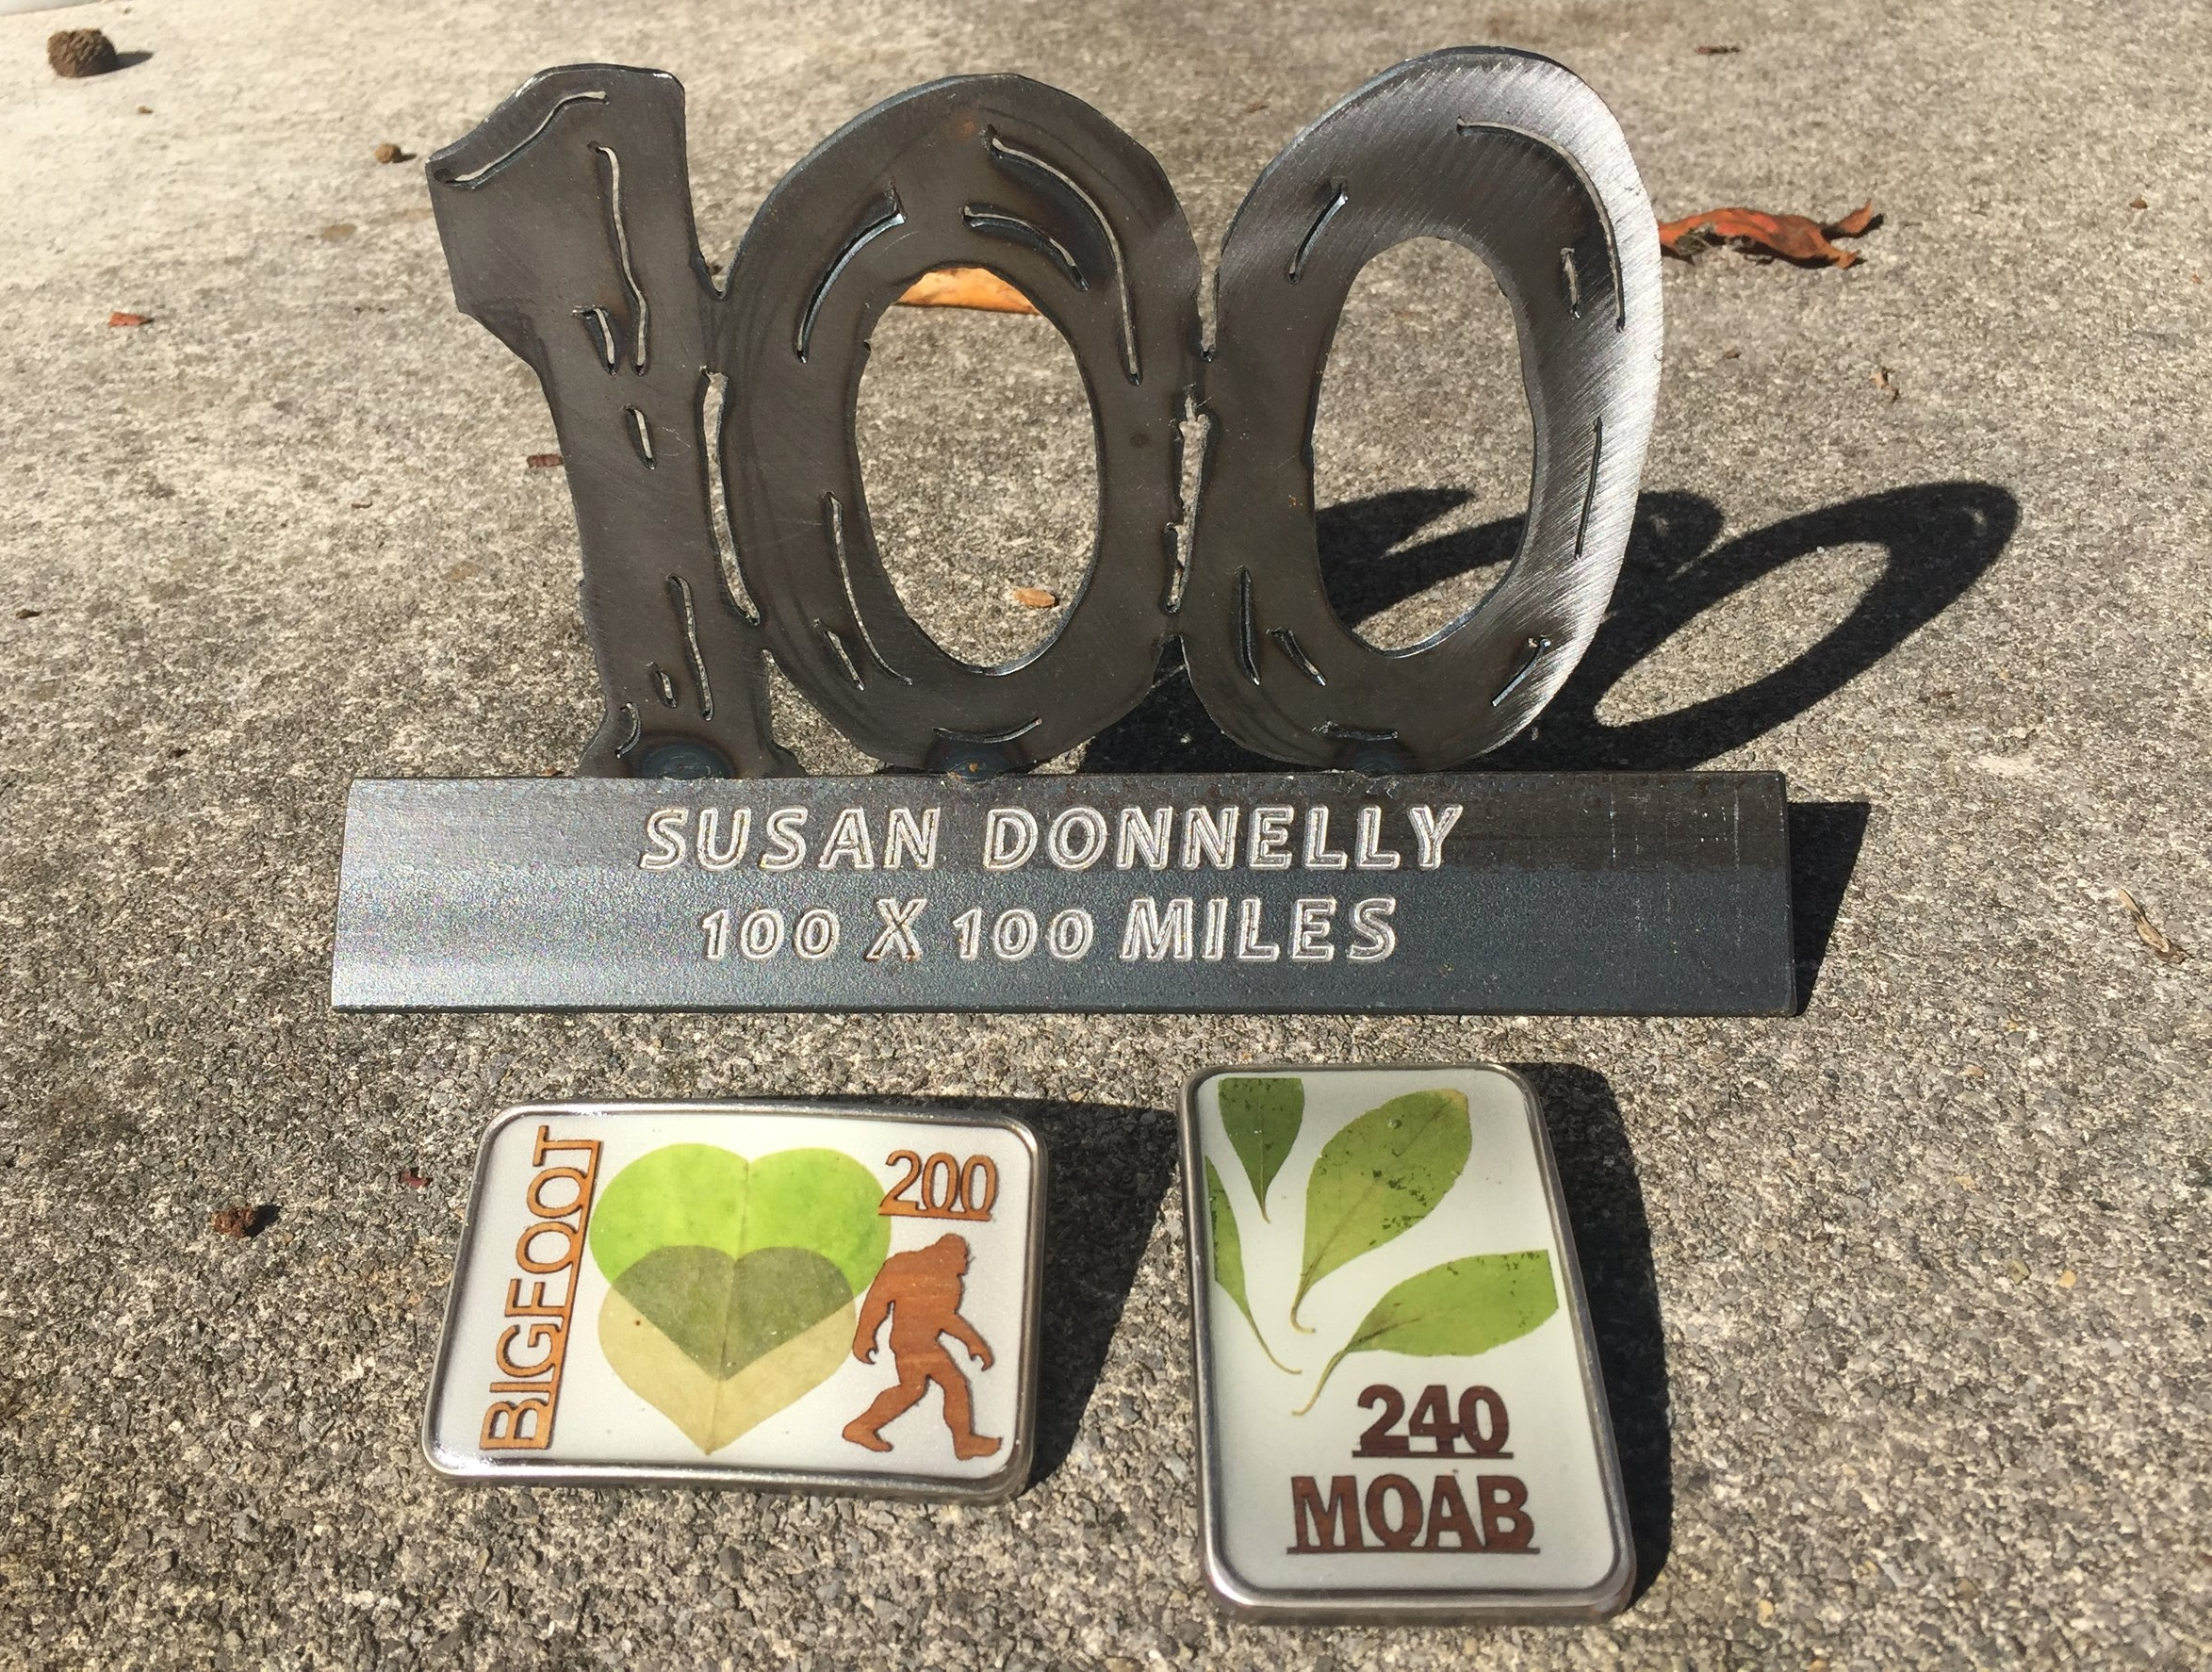 How Susan Donnelly balances life and training to finishing 100 100-mile and two 200-mile ultramarathons